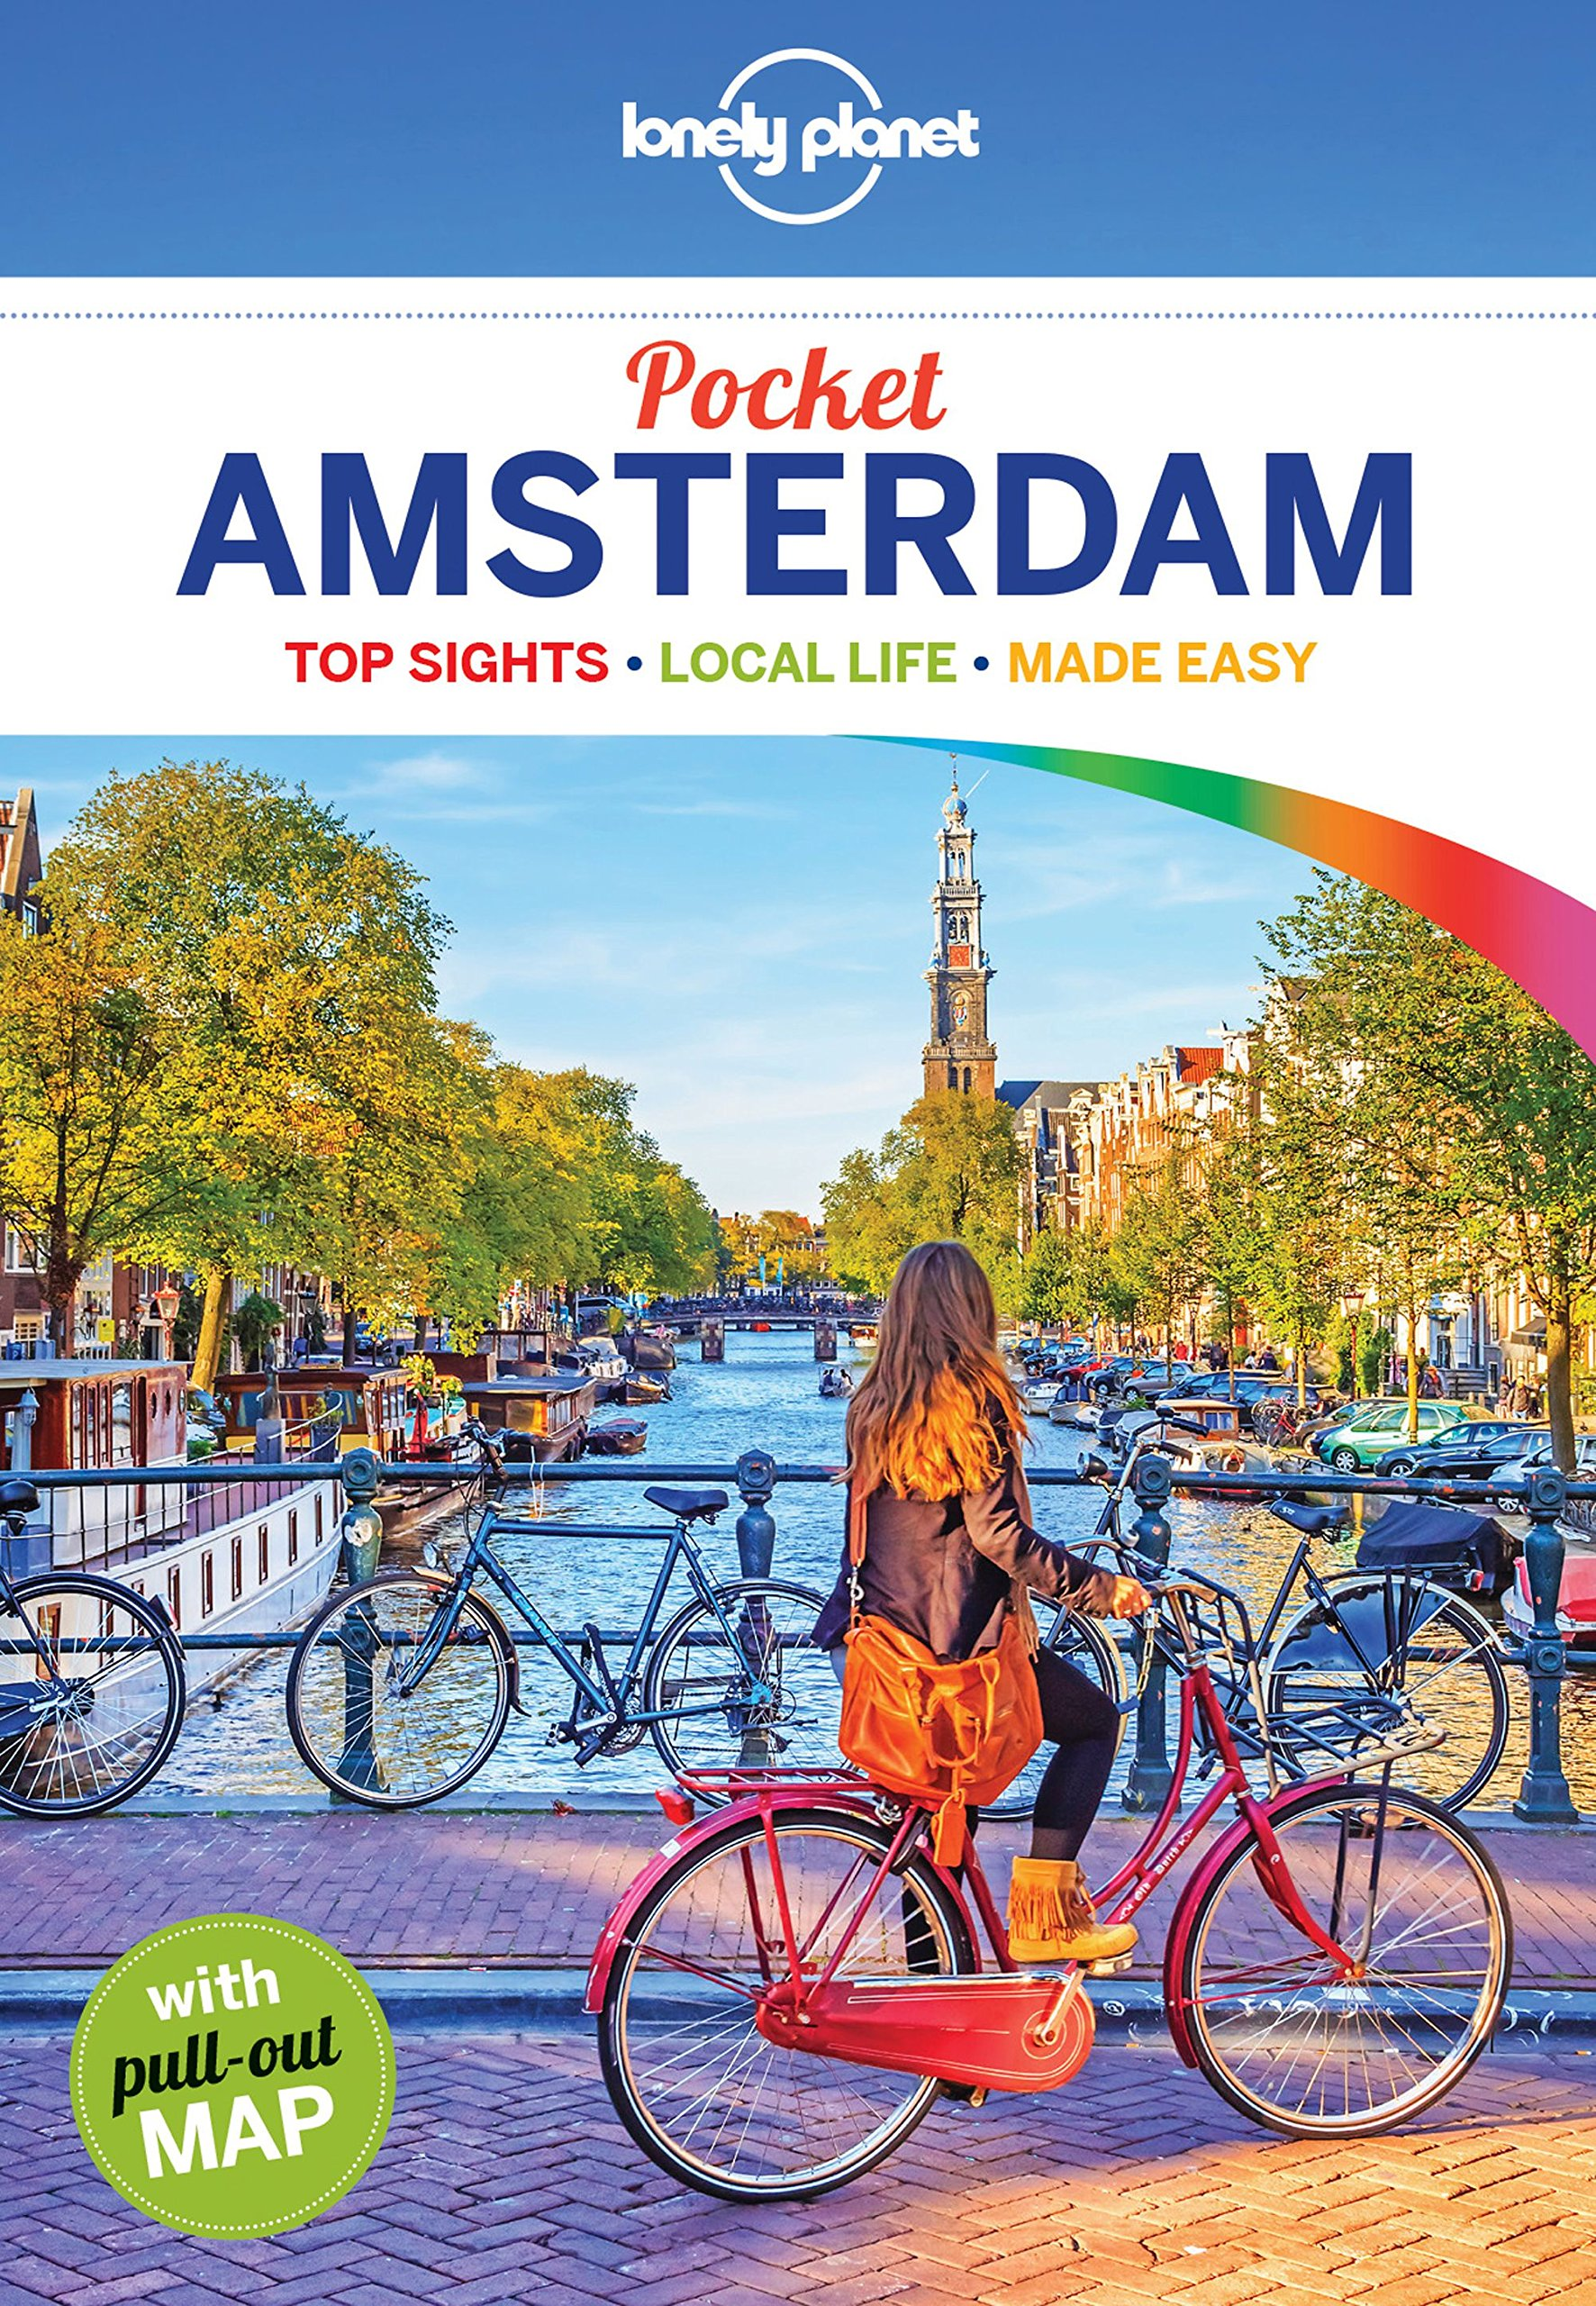 lonely-planet-pocket-amsterdam-travel-guide